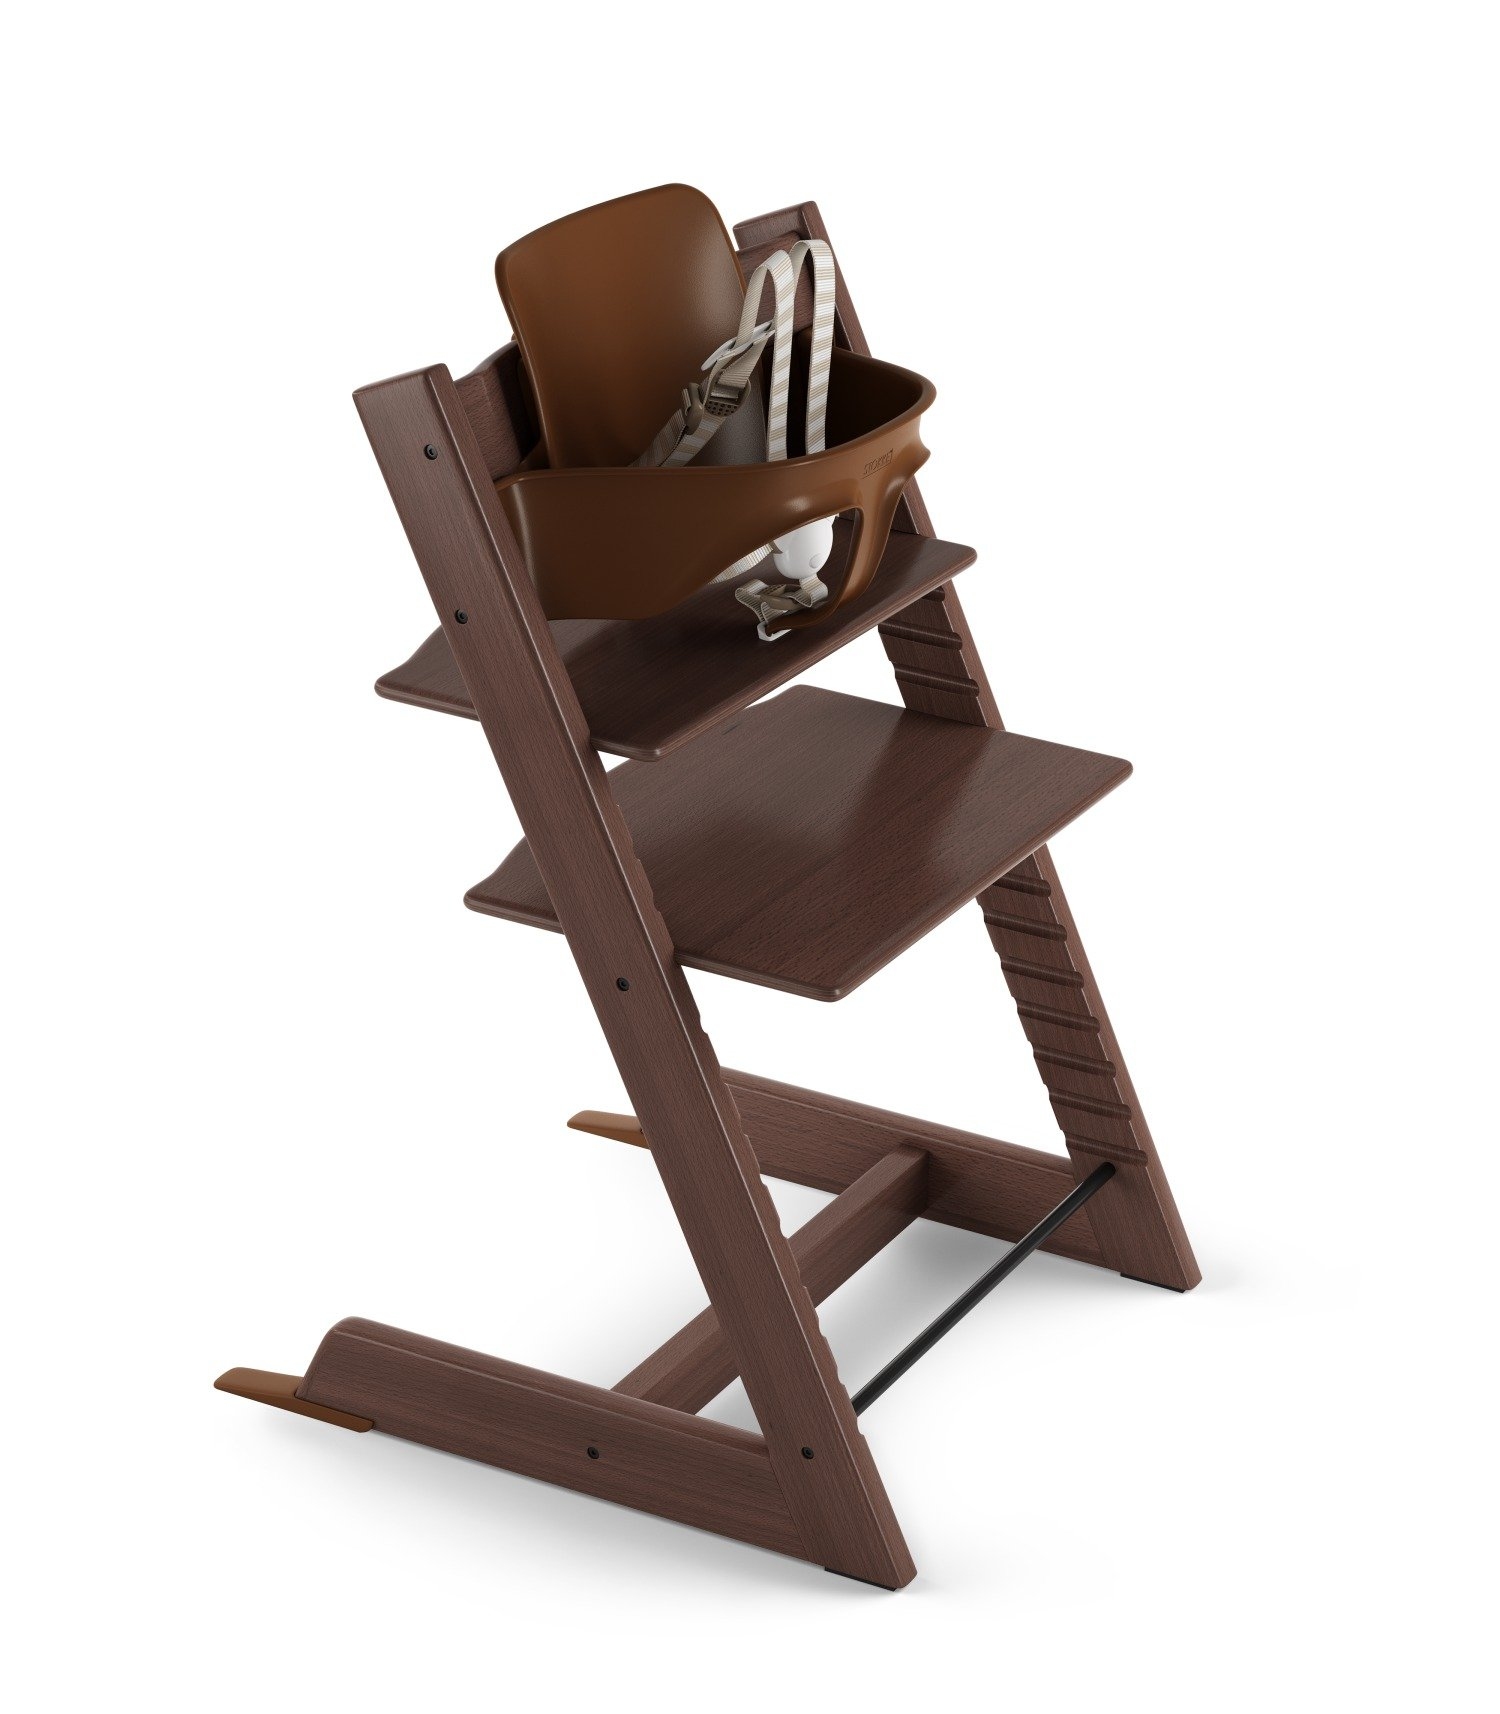 Stokke Tripp Trapp High Chair Package - Walnut Brown